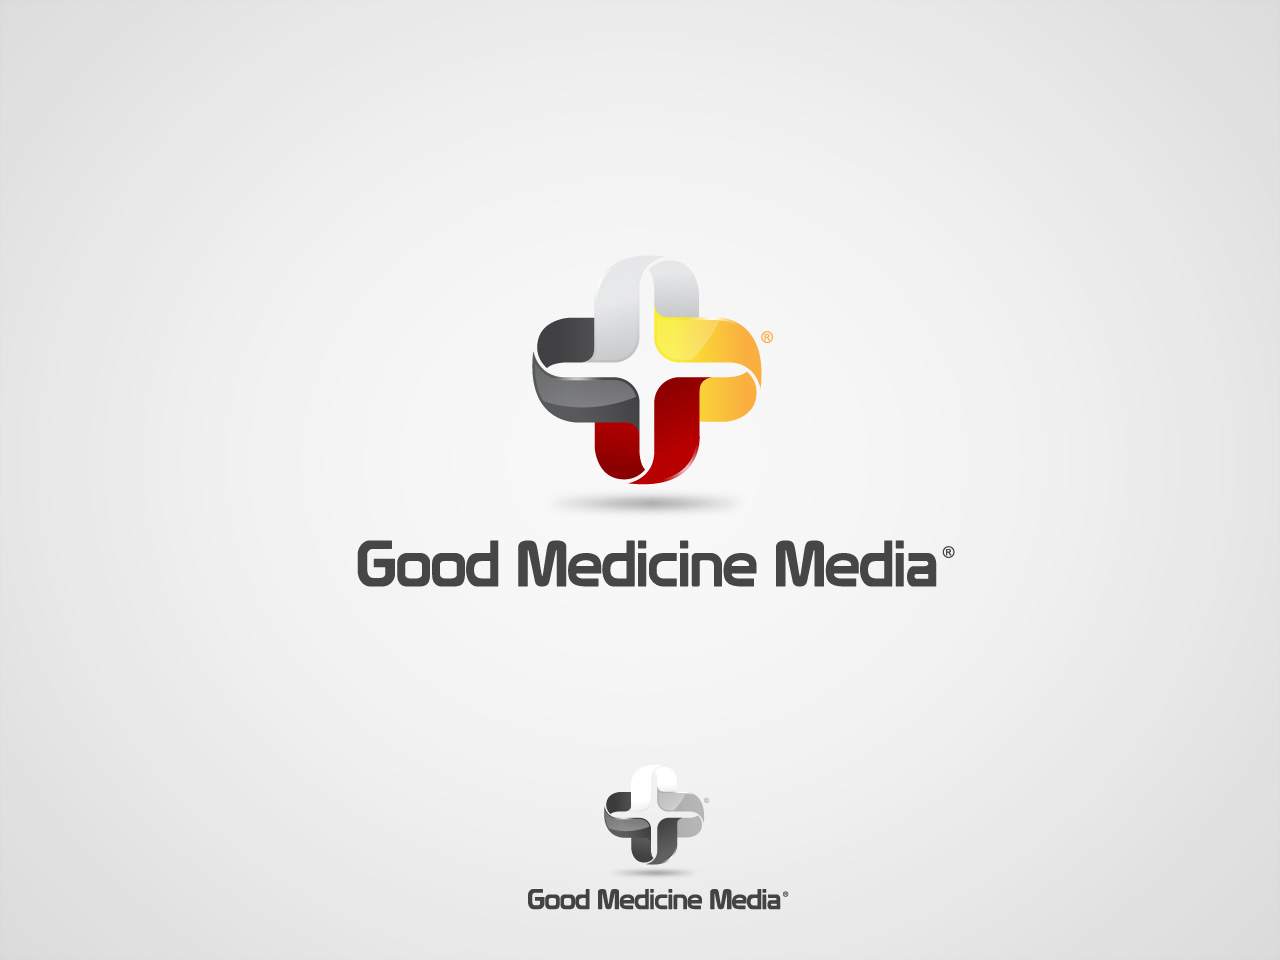 Logo Design by jpbituin - Entry No. 52 in the Logo Design Contest Good Medicine Media Logo Design.